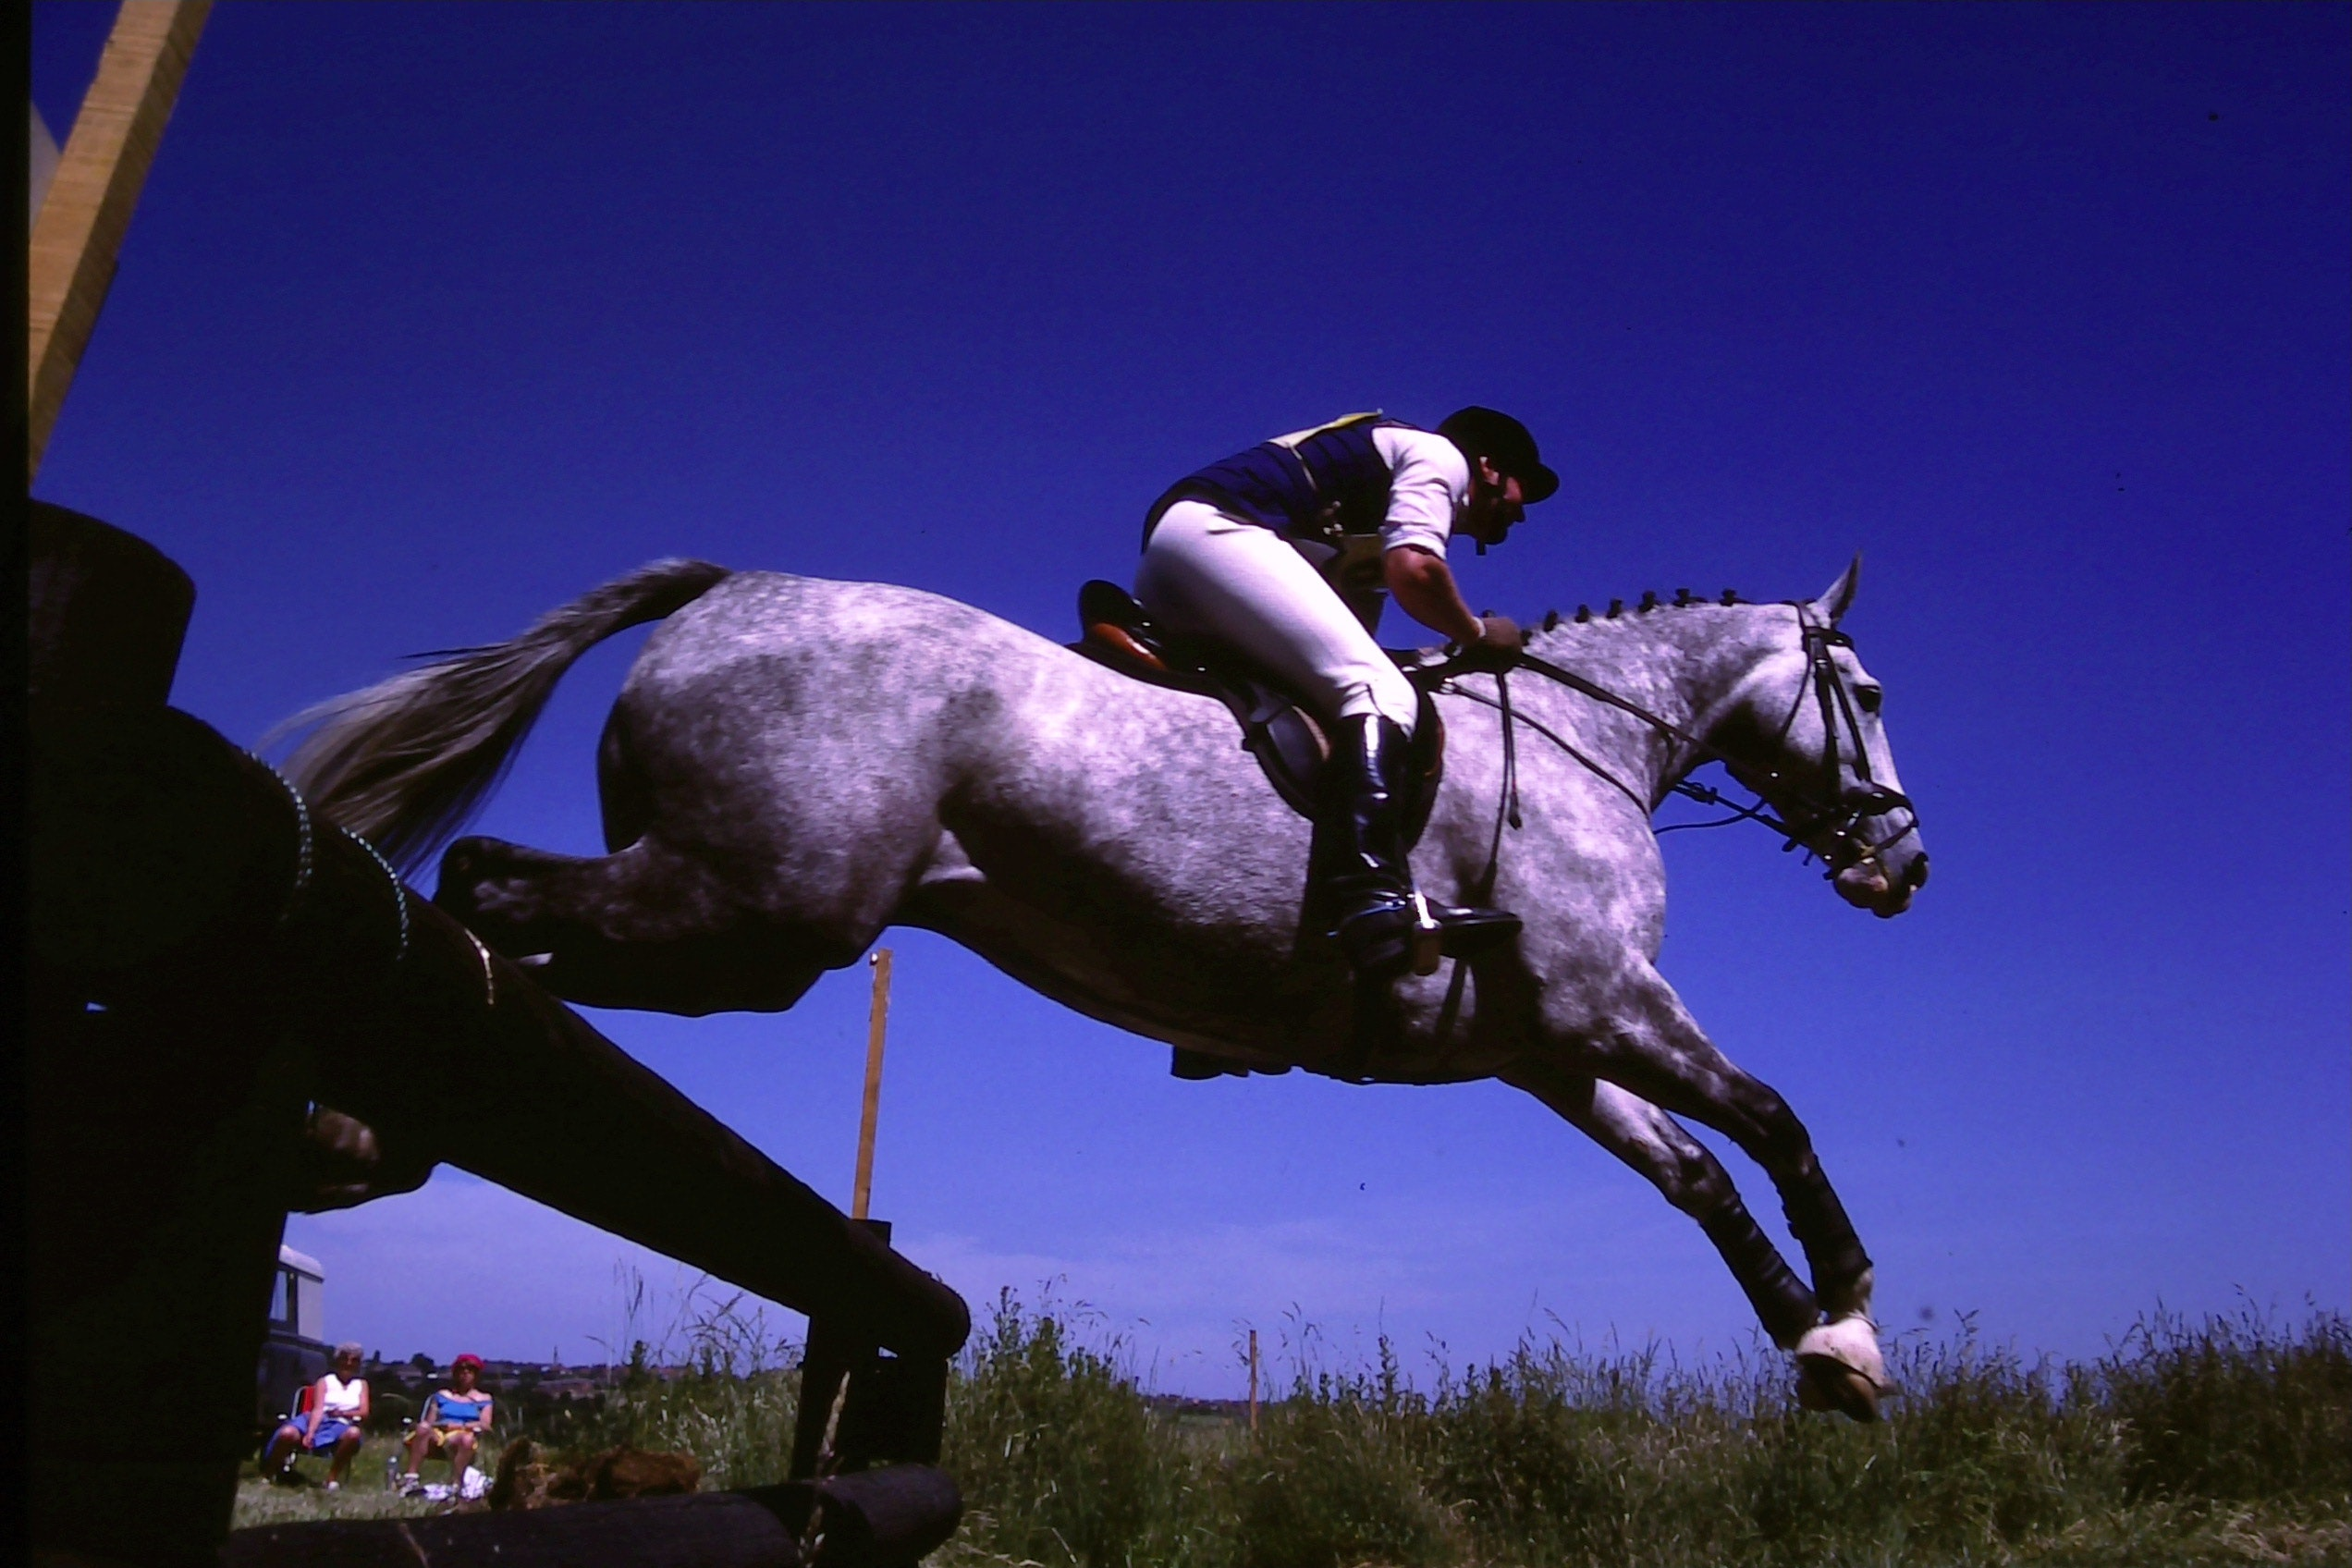 Why The Long Face Just How Risky Is Horse Riding